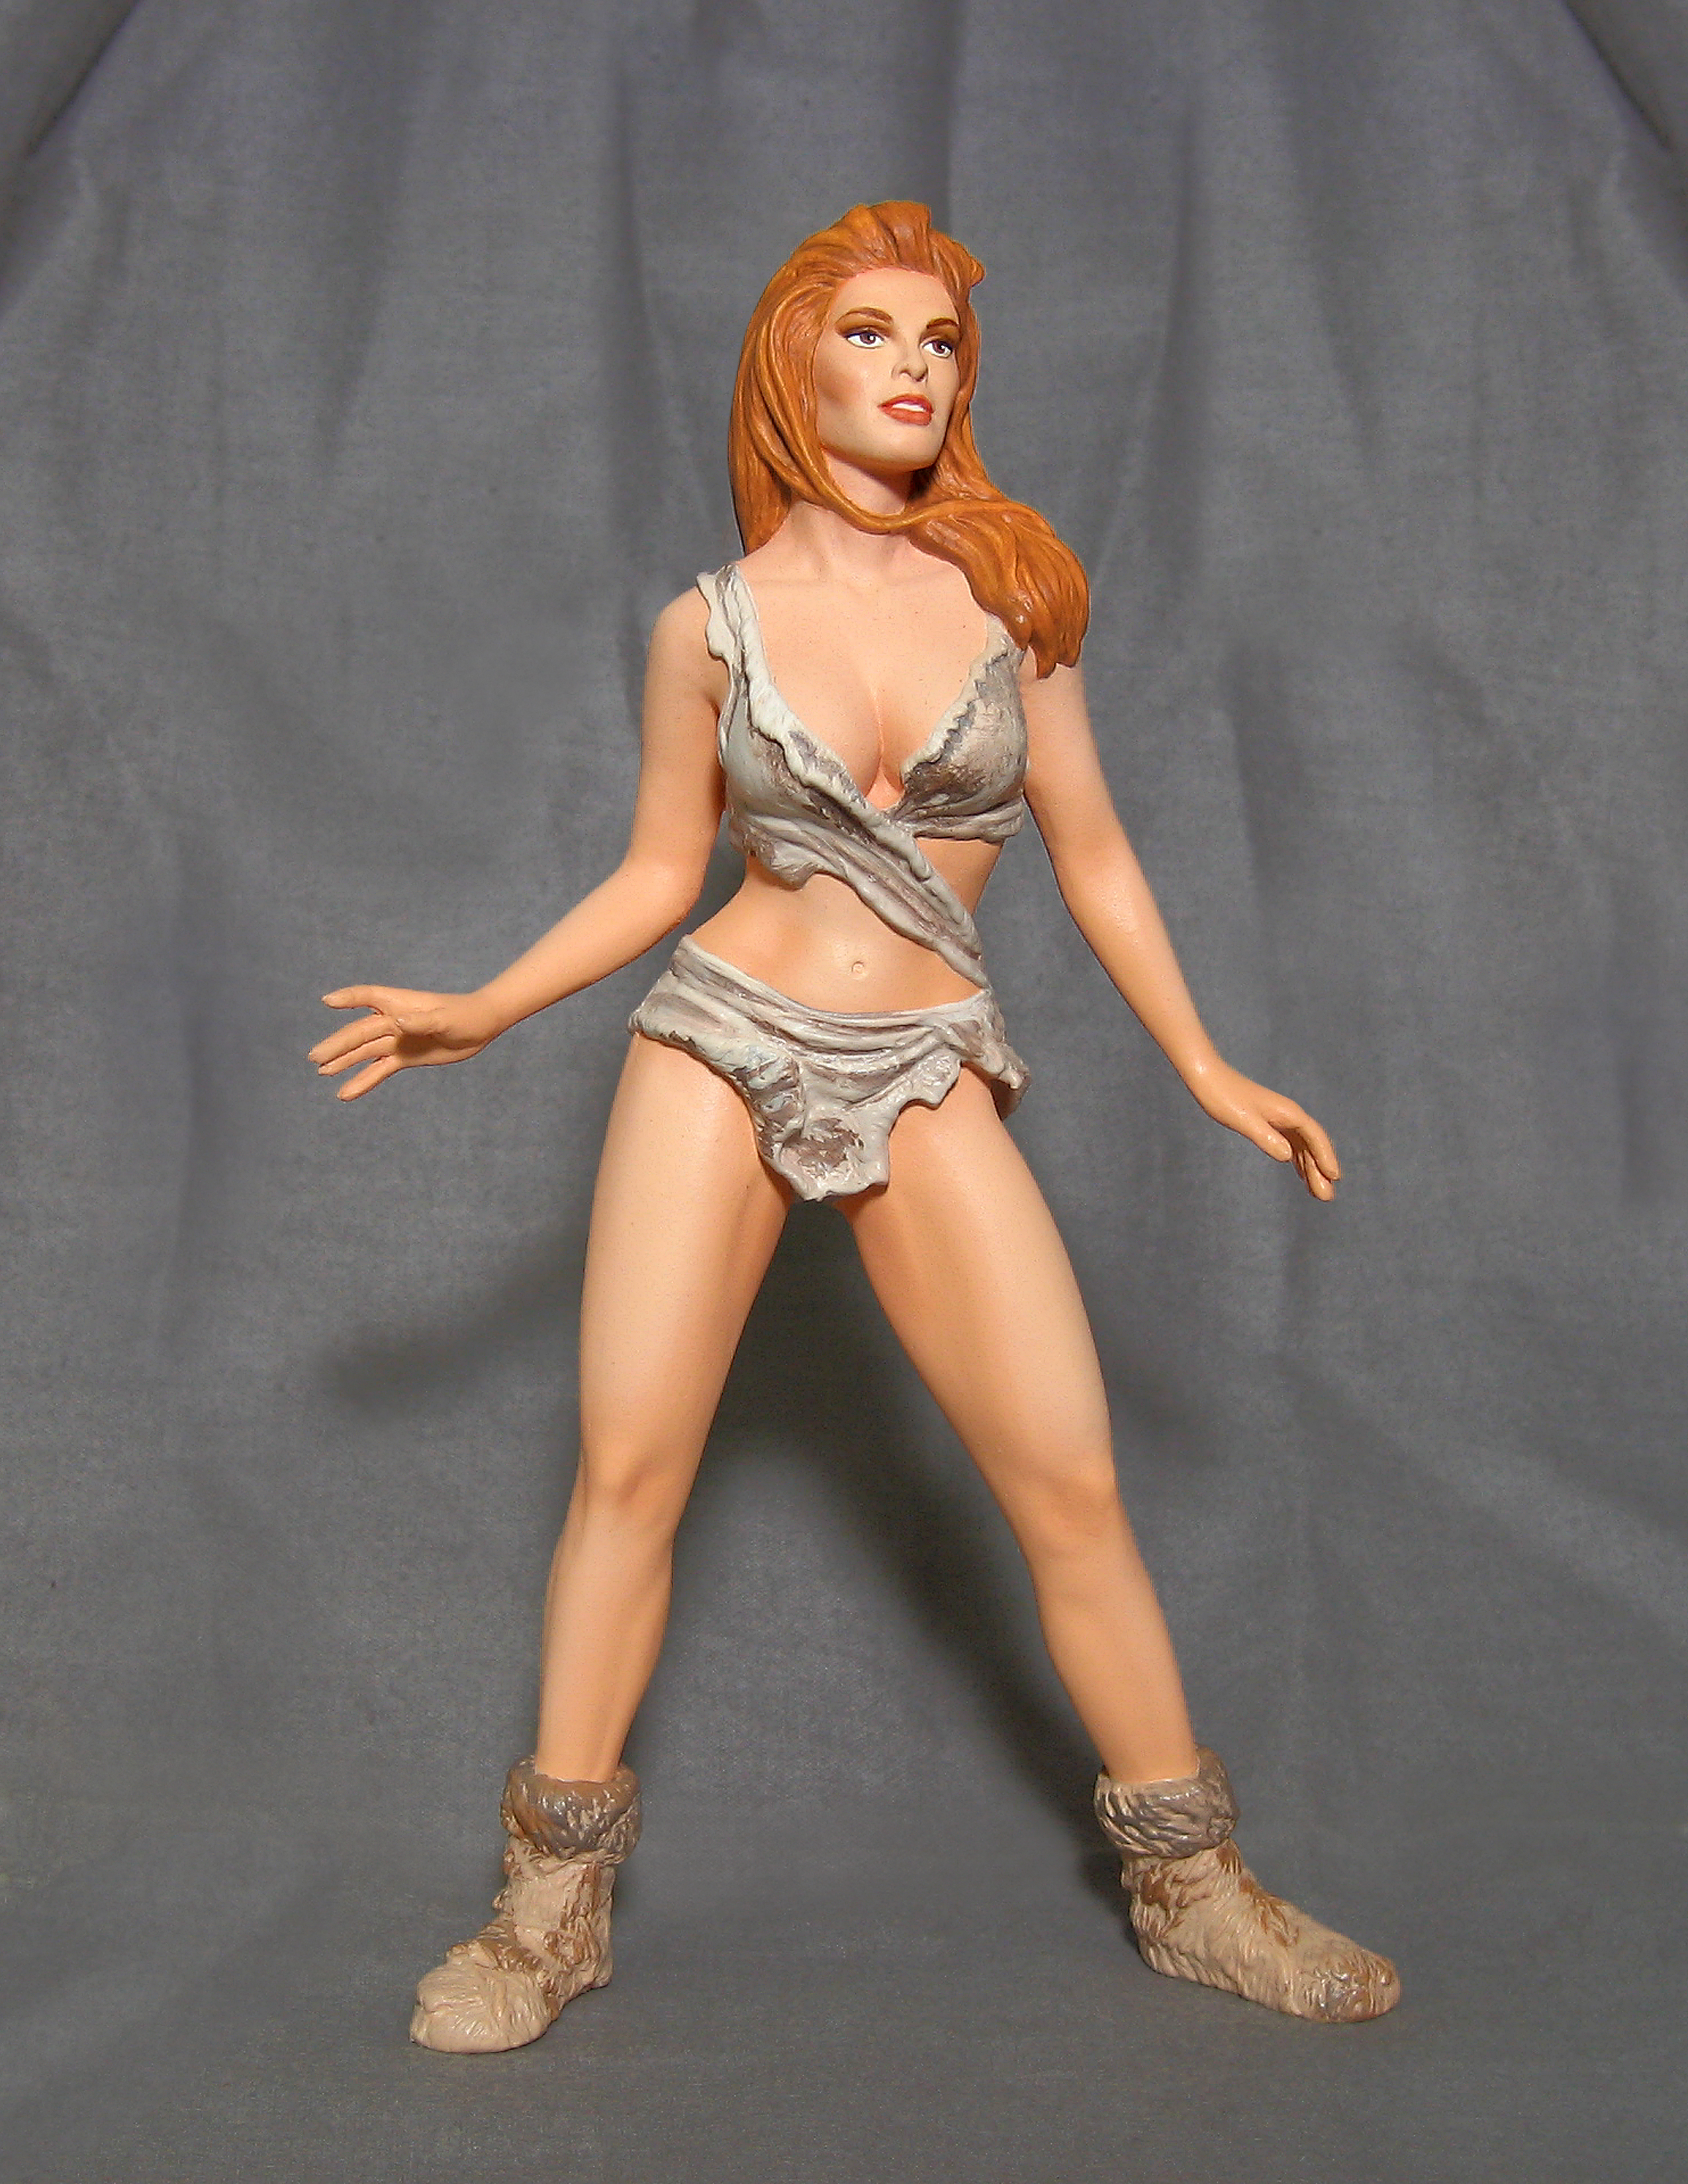 Raquel Welch in her fur bikini - snap together model kit - never produced